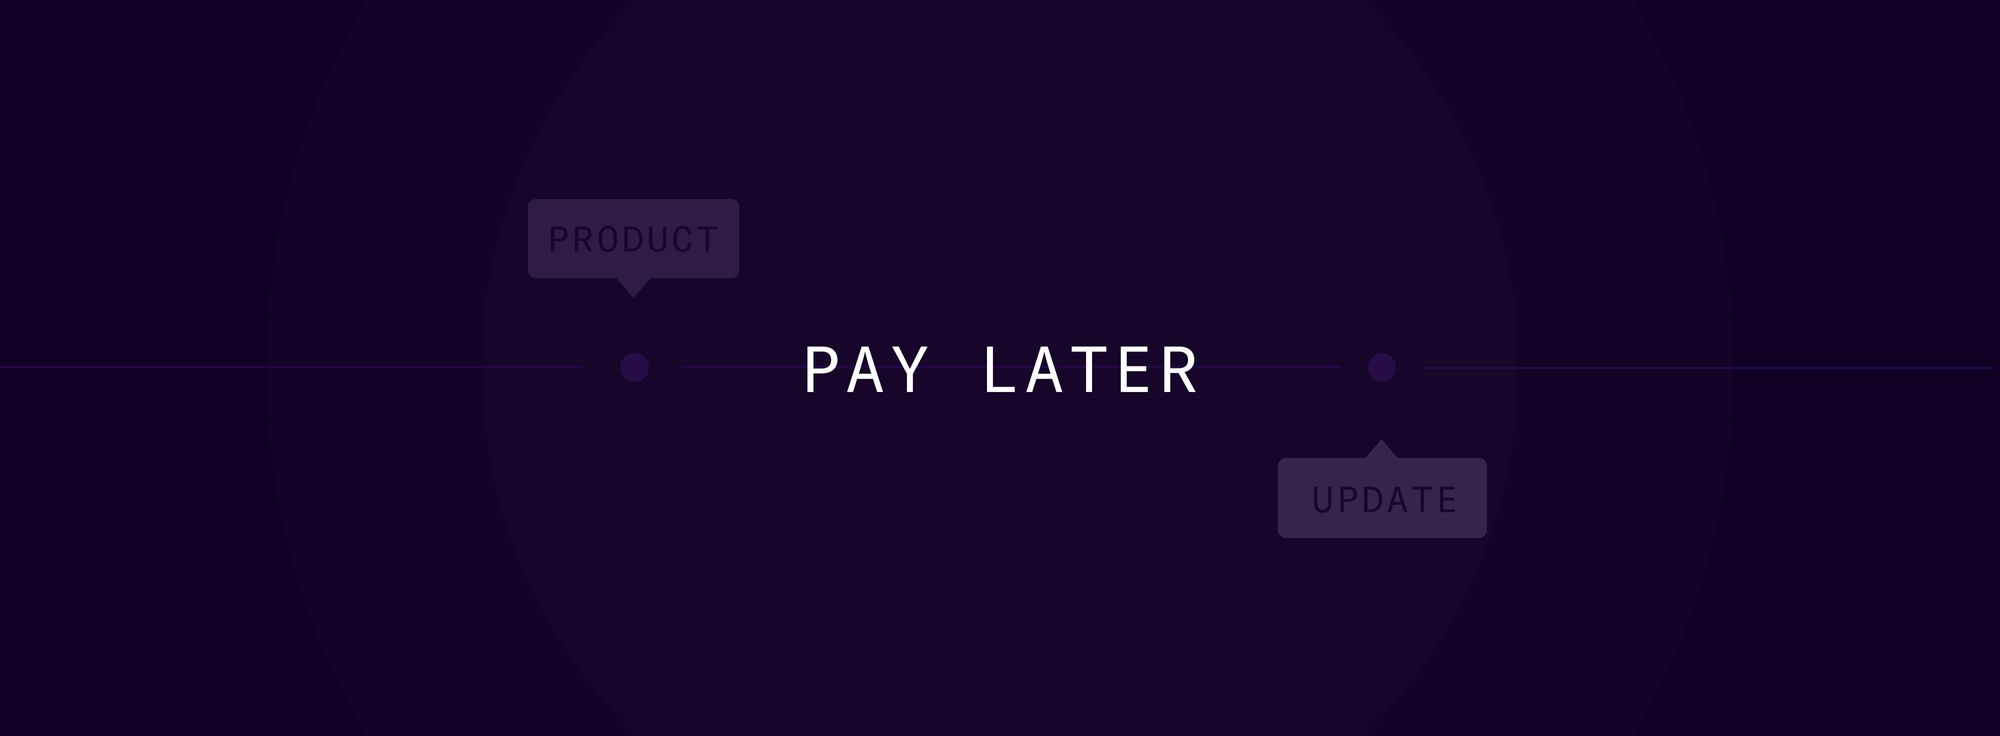 Duffel launches Pay Later